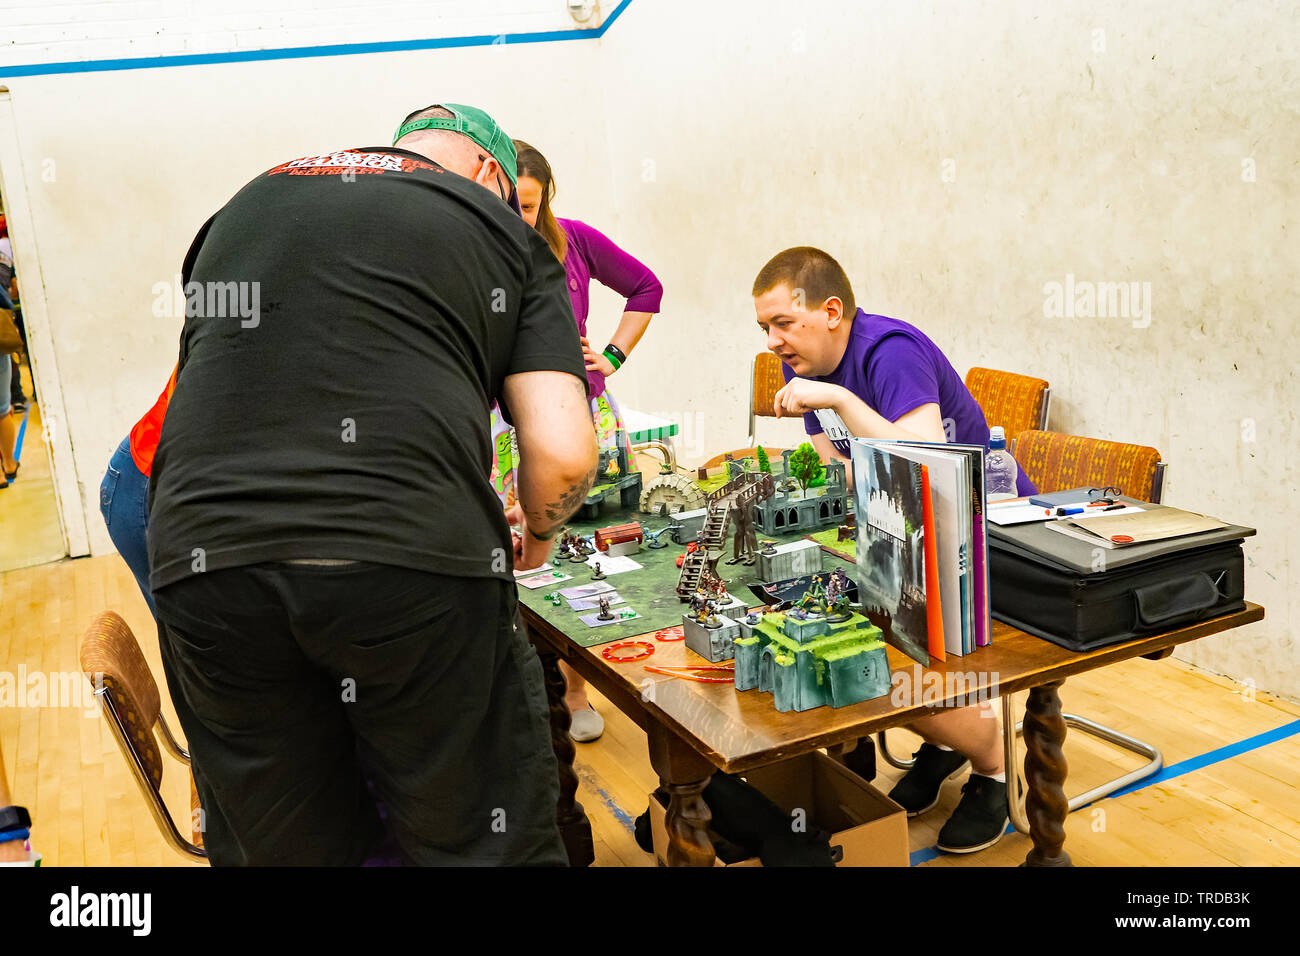 Great Yarmouth Comicon 2019 – Family playing Exodus role playing  game at the Comicon event in the seaside town of Great Yarmouth - Stock Image